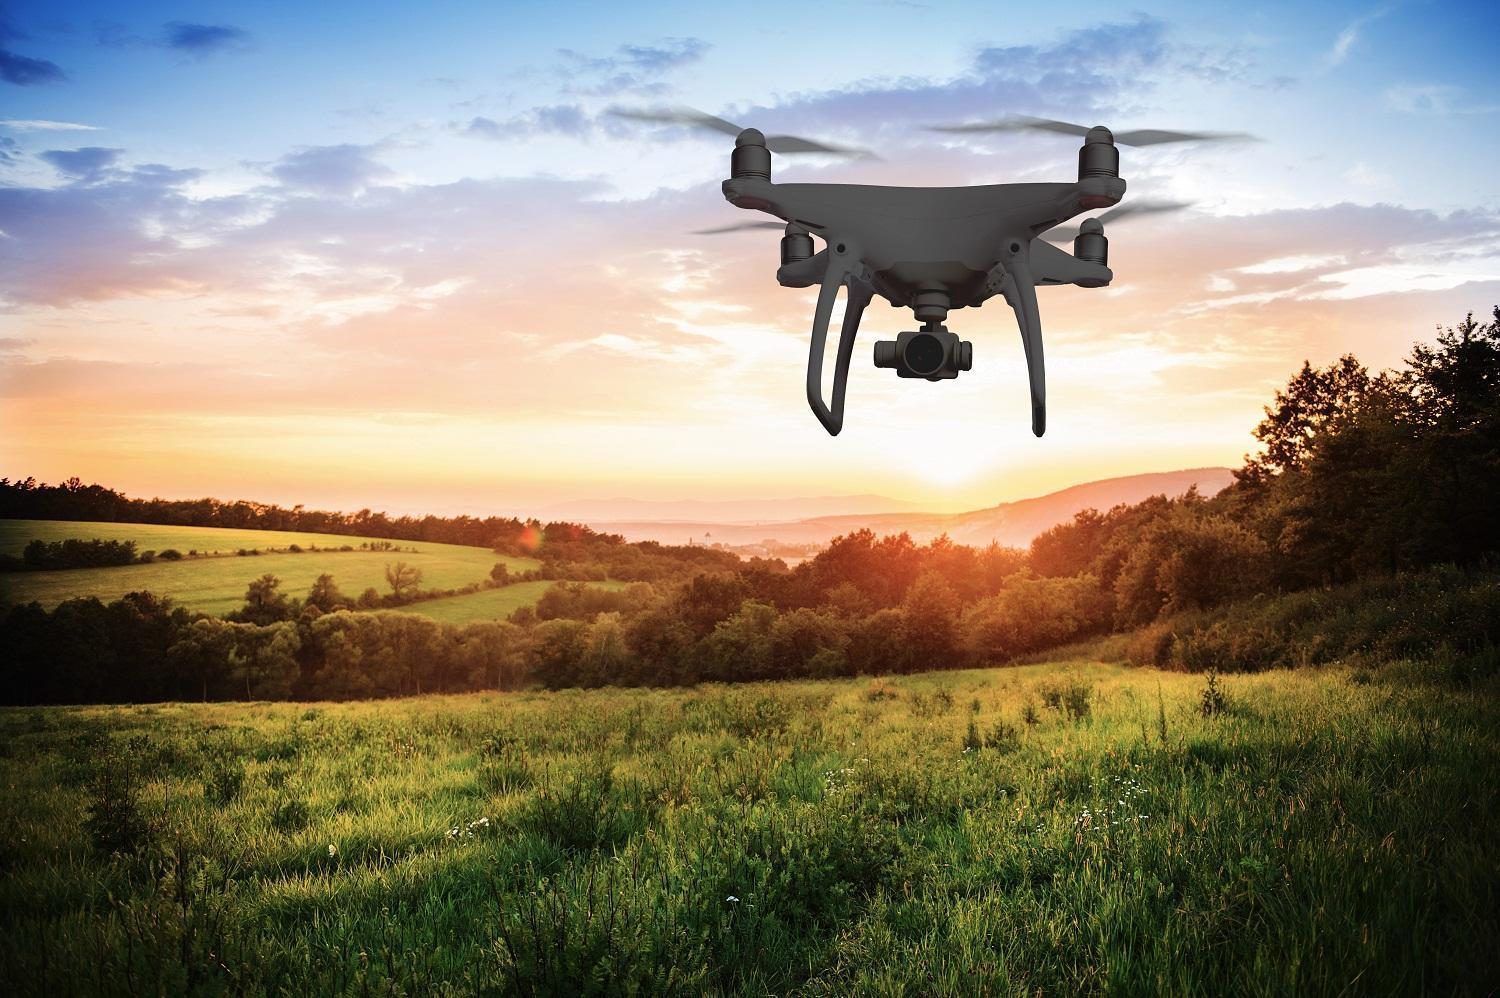 hovering-drone-taking-pictures.jpg